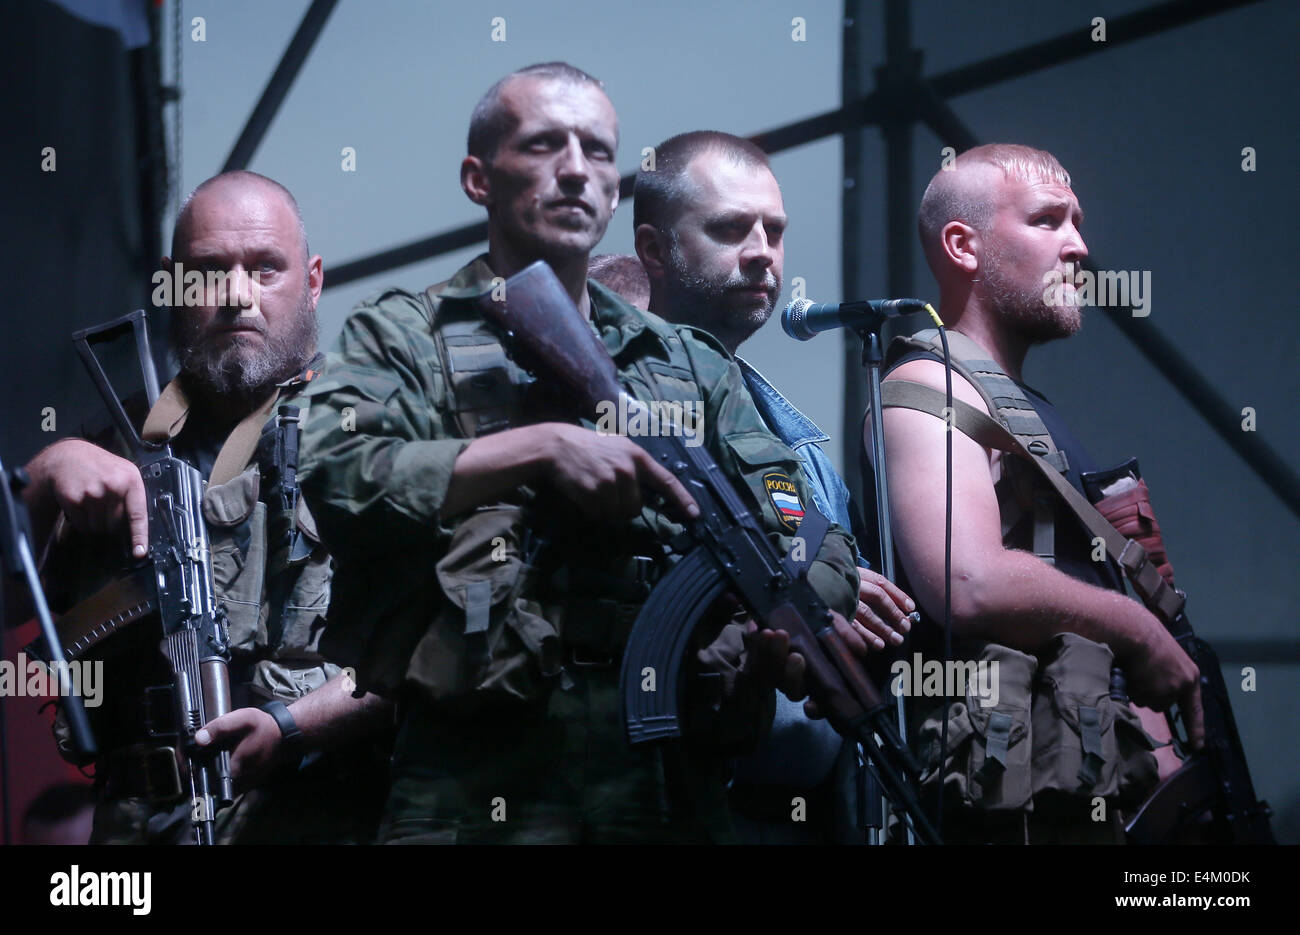 Donetsk, Ukraine. 13th July, 2014. Donetsk People's Republic governor Pavel Gubarev (2nd R) speaks at a rally - Stock Image